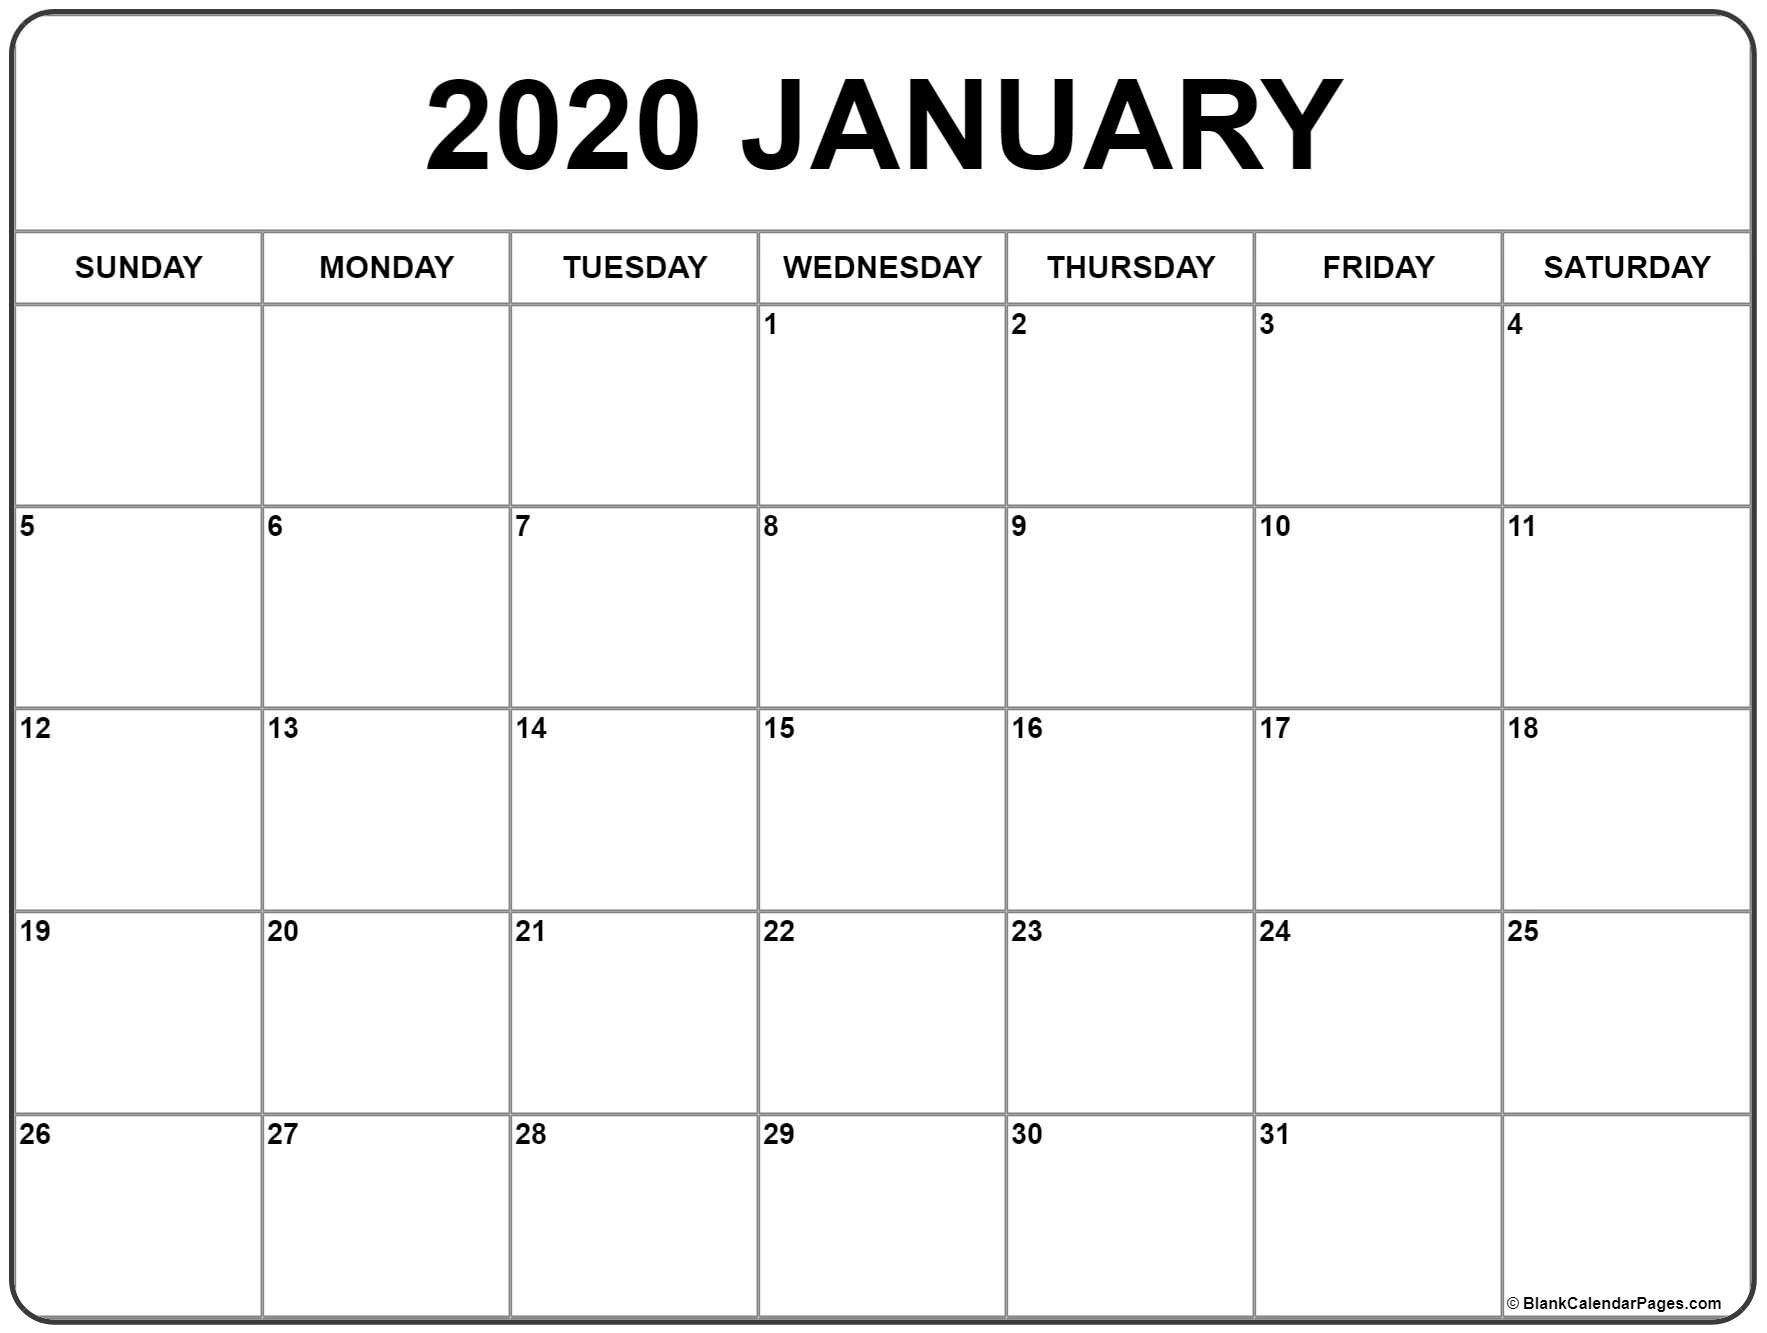 January 2020 Calendar | Free Printable Monthly Calendars-January 2020 Calendar Wallpaper